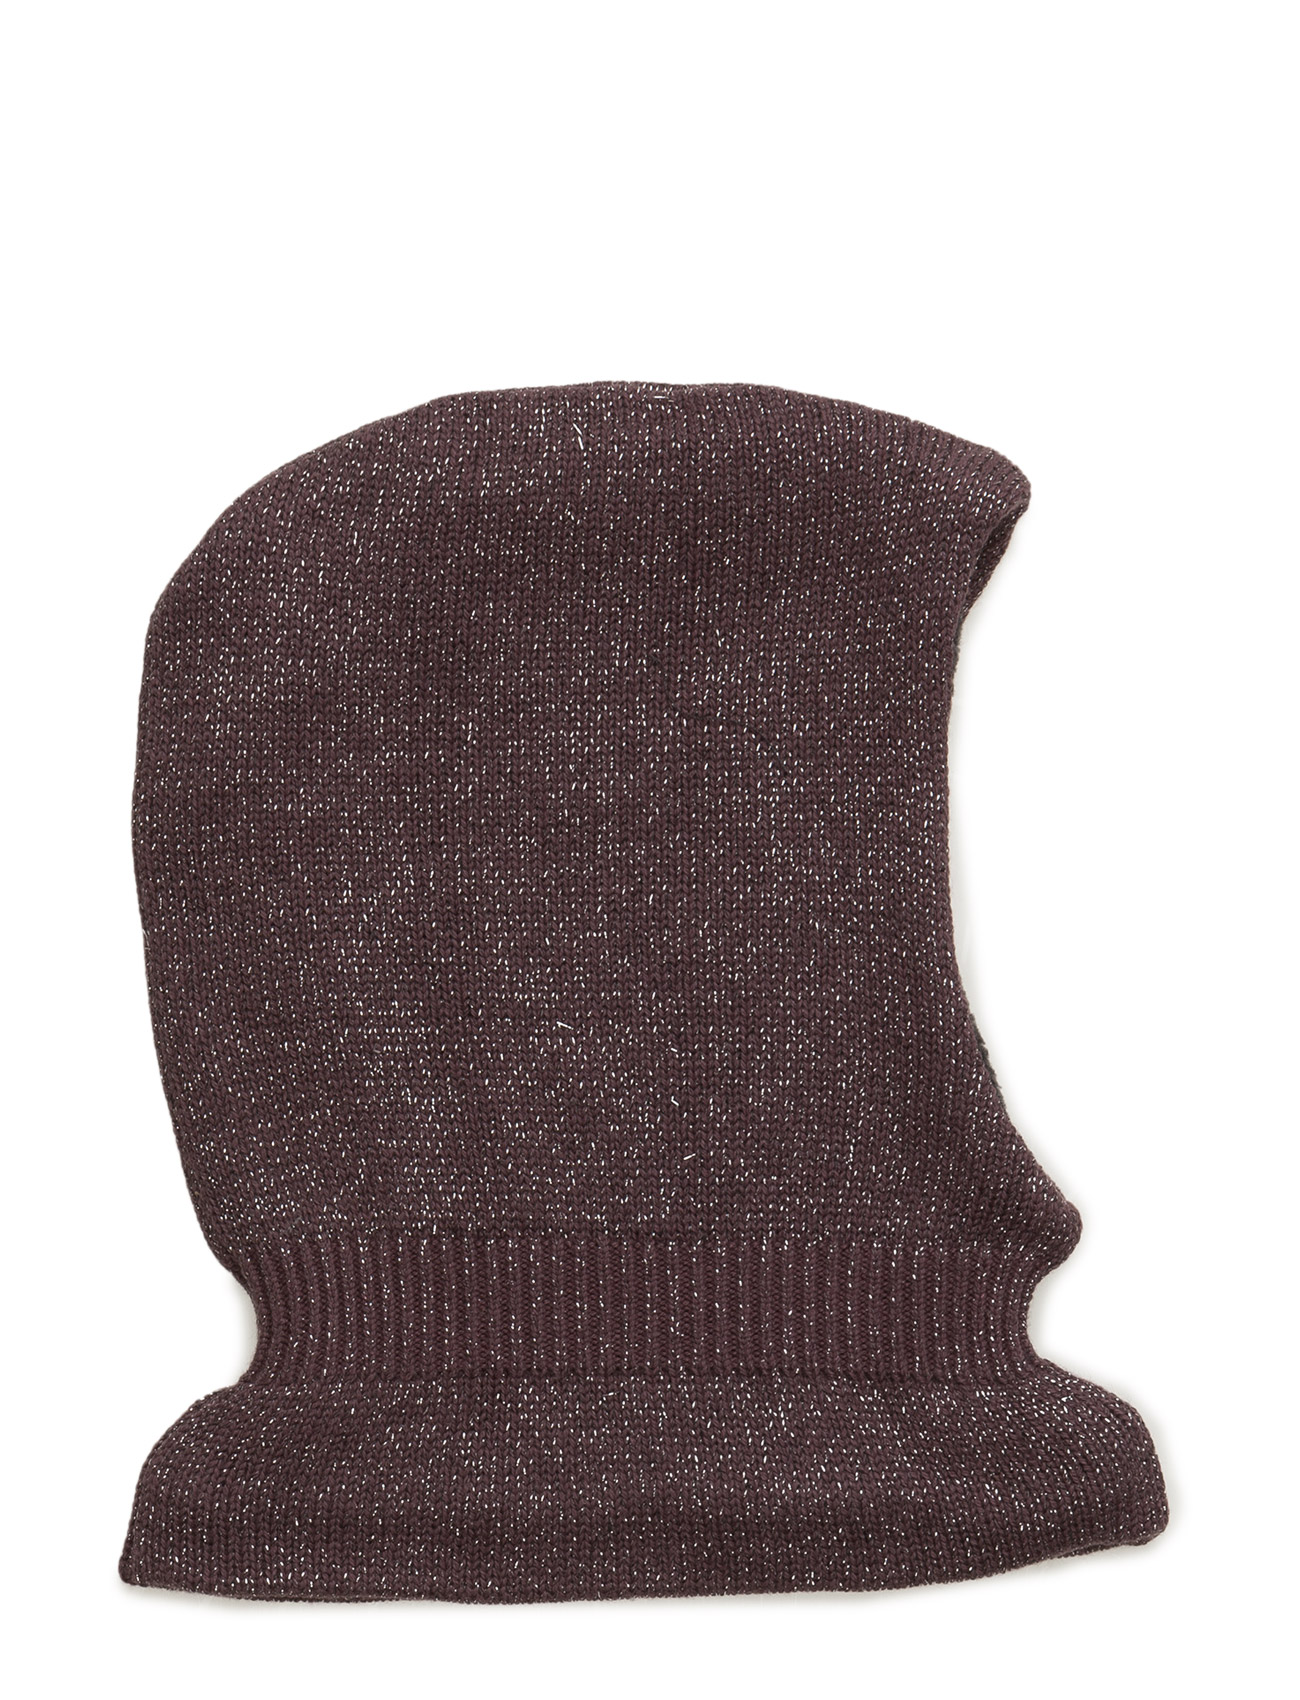 Knitted Elephant Hat Wheat Accessories til Børn i